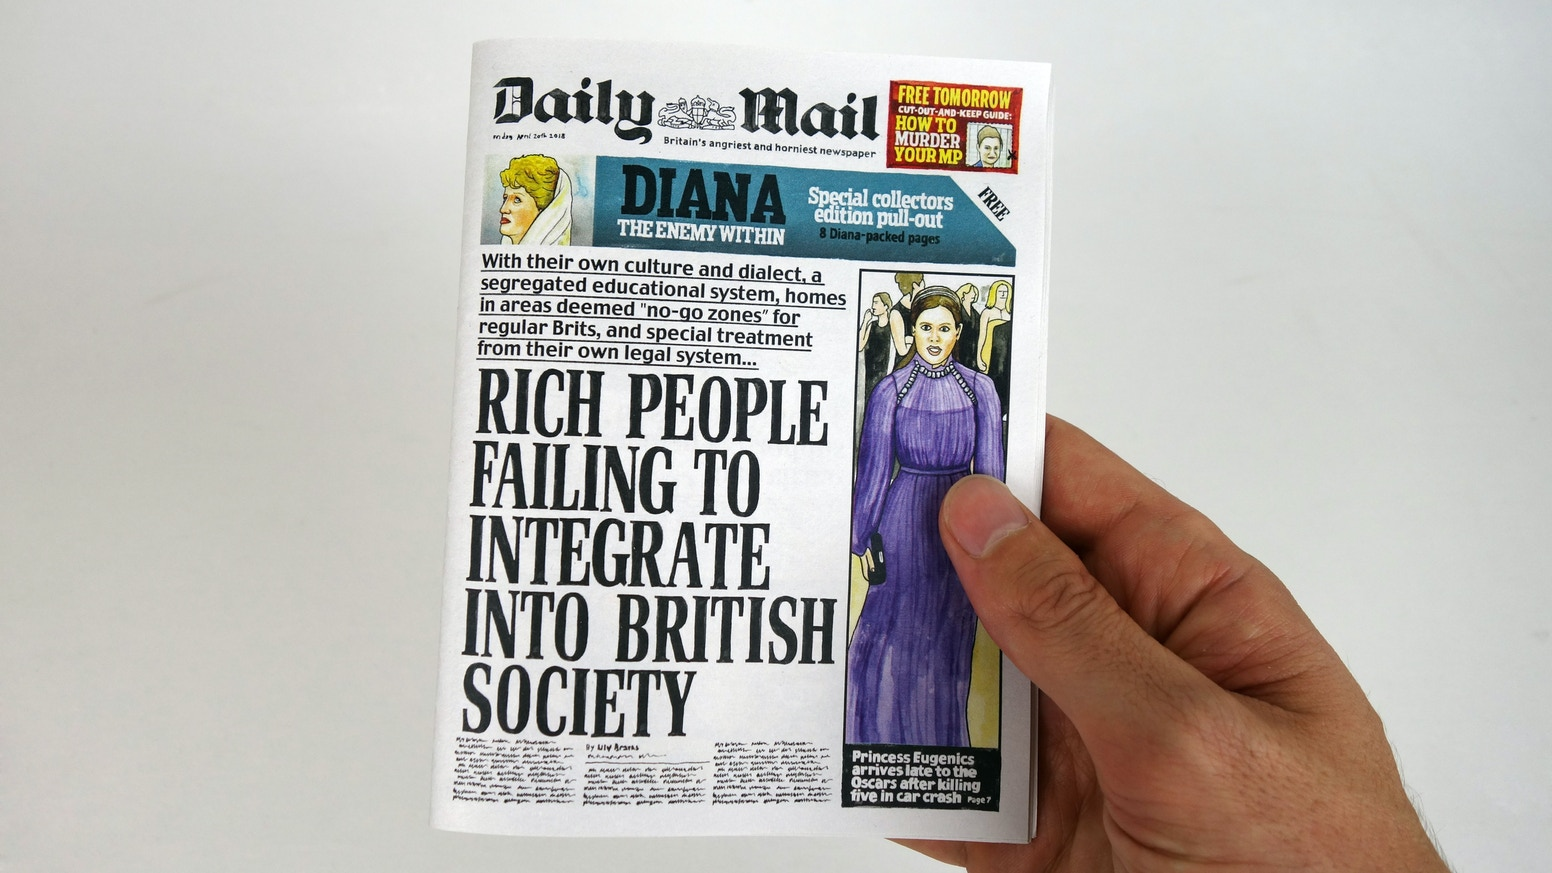 A miniature, boiled-down version of the full paper, it's like the Daily Mail, but distilled to its angry, horny core.